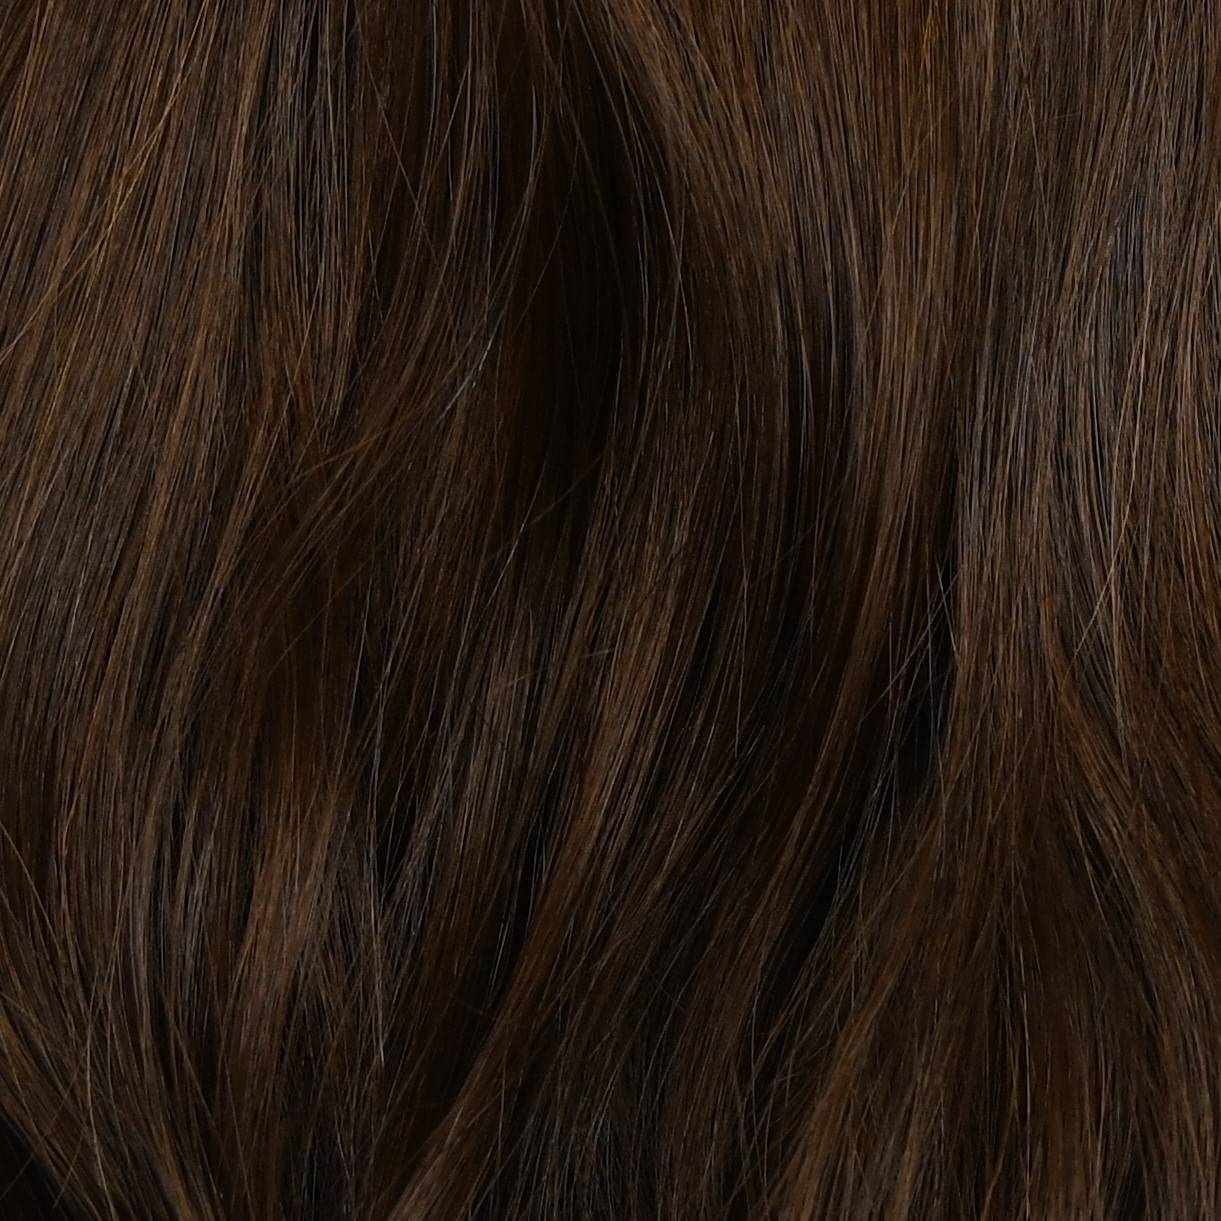 light brown and light black  color hair extensions sample in hair color chart